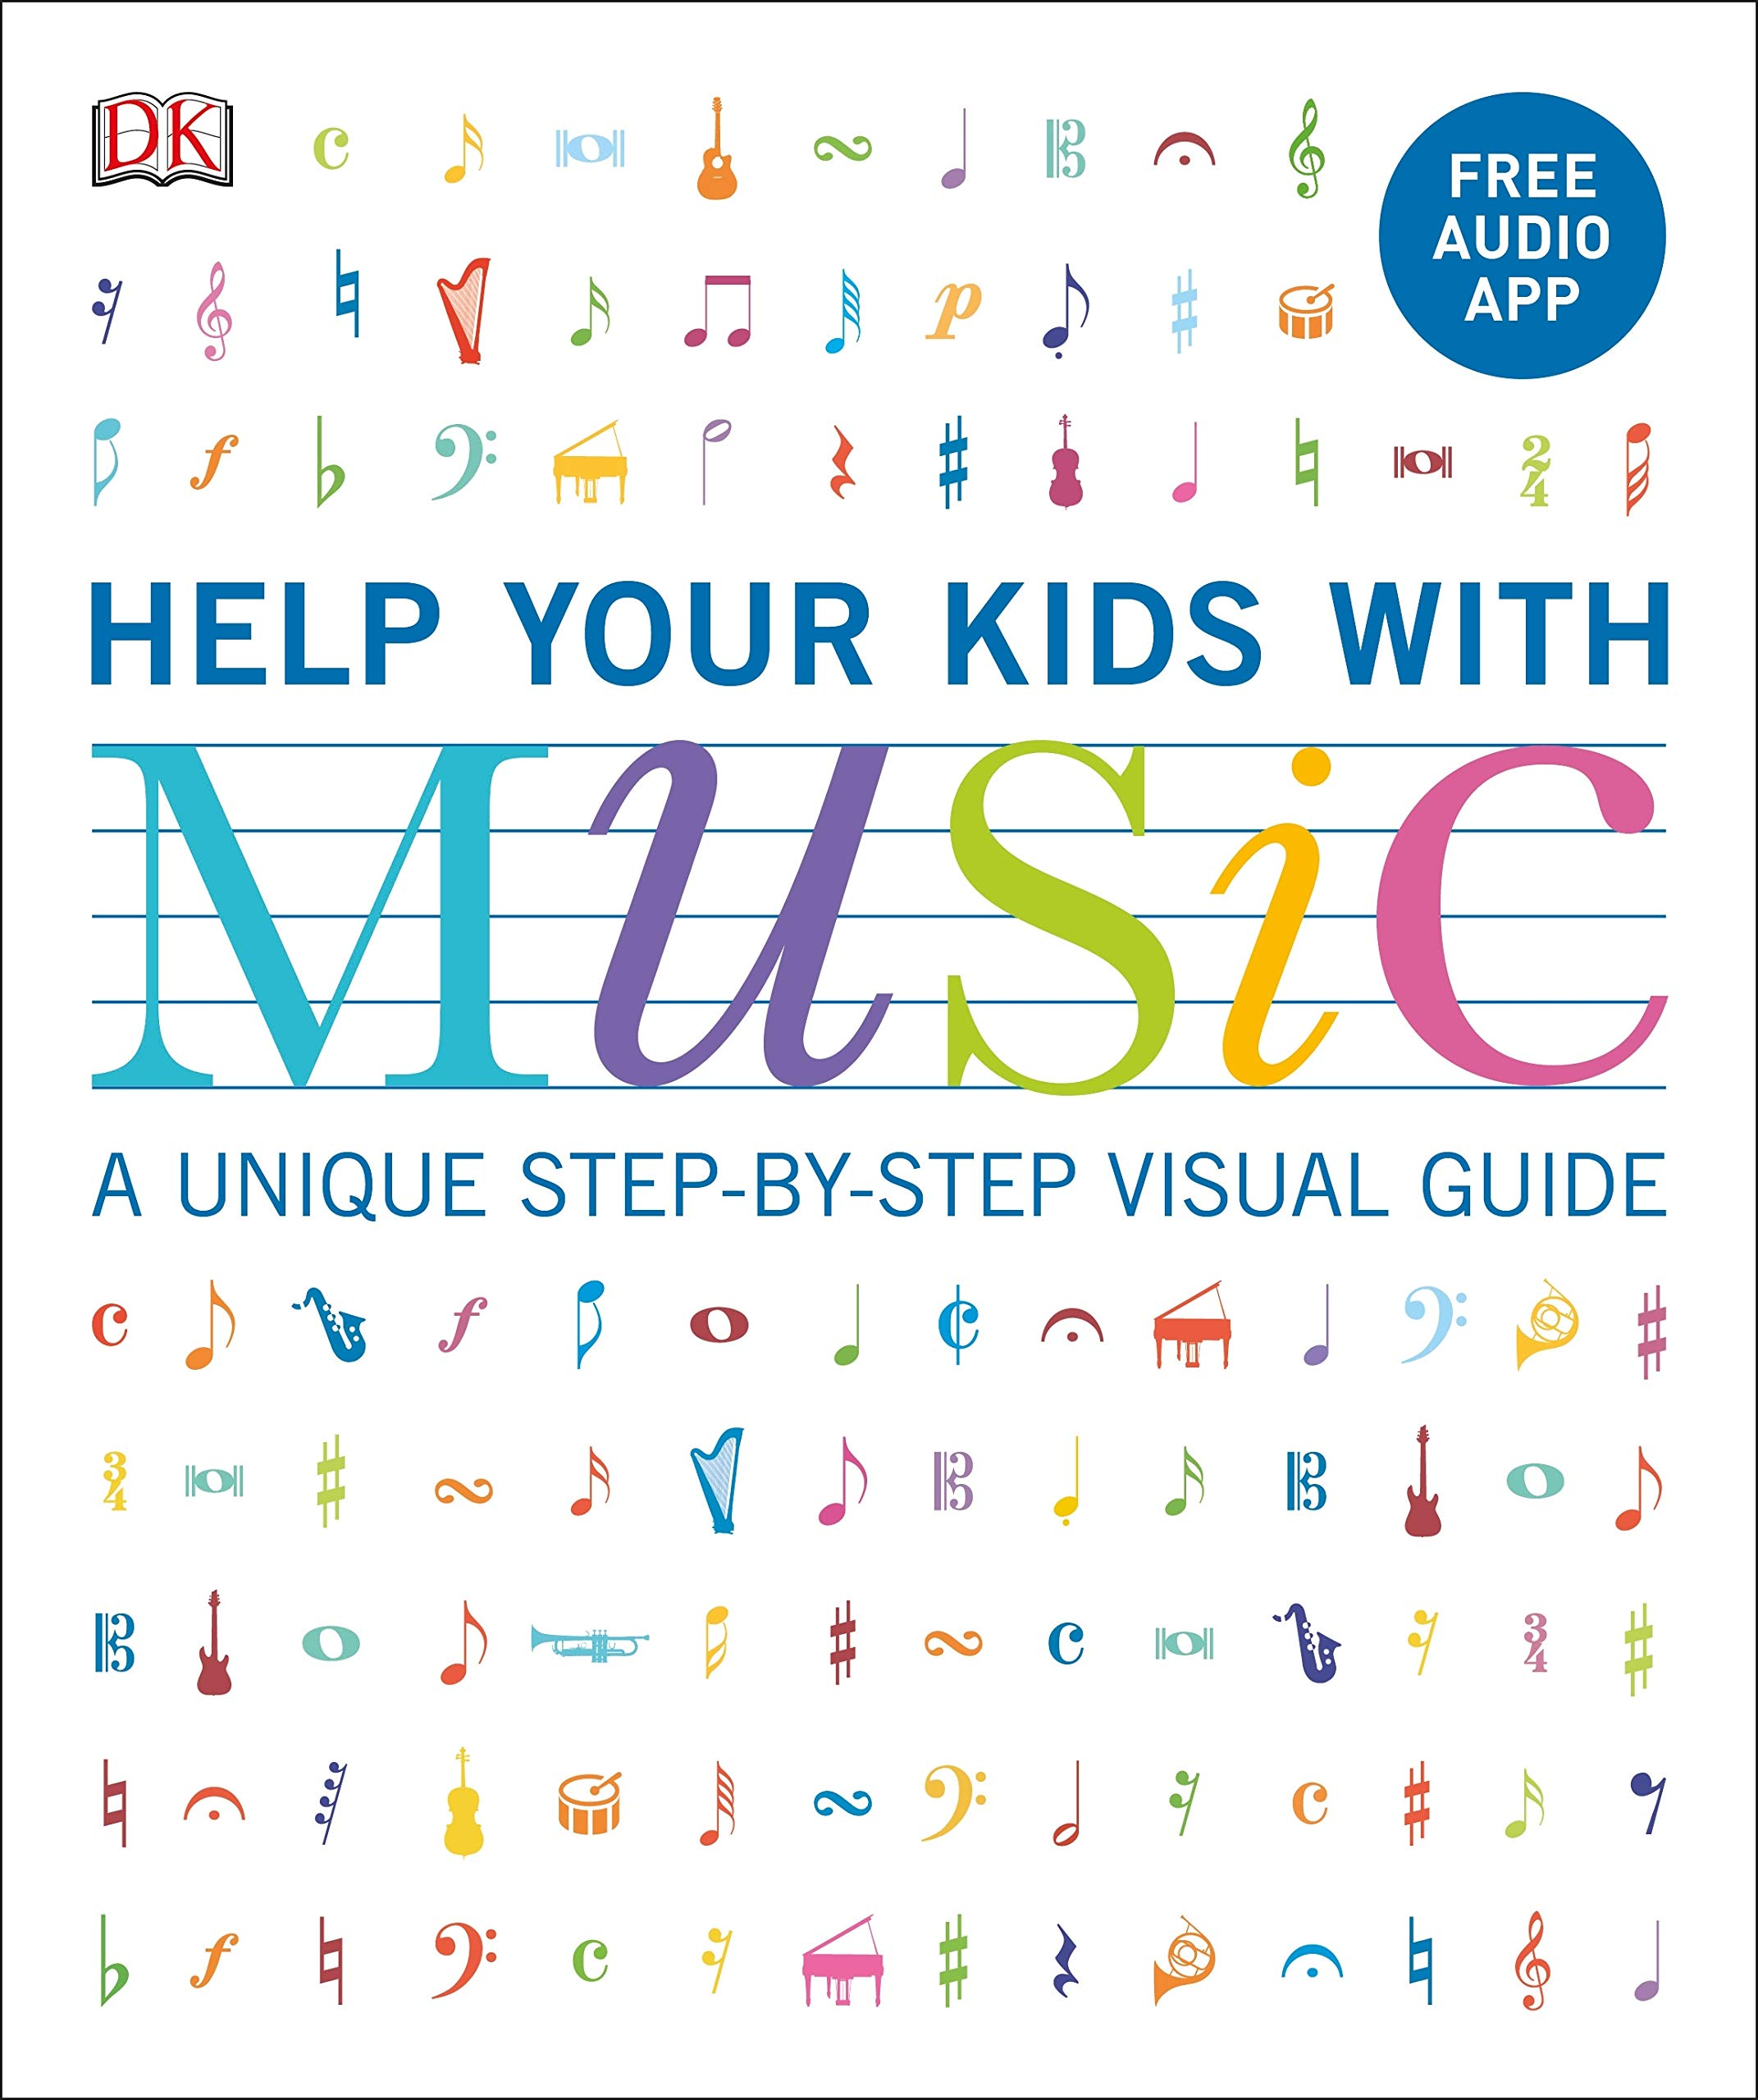 Image OfHelp Your Kids With Music: A Unique Step-by-step Visual Guide